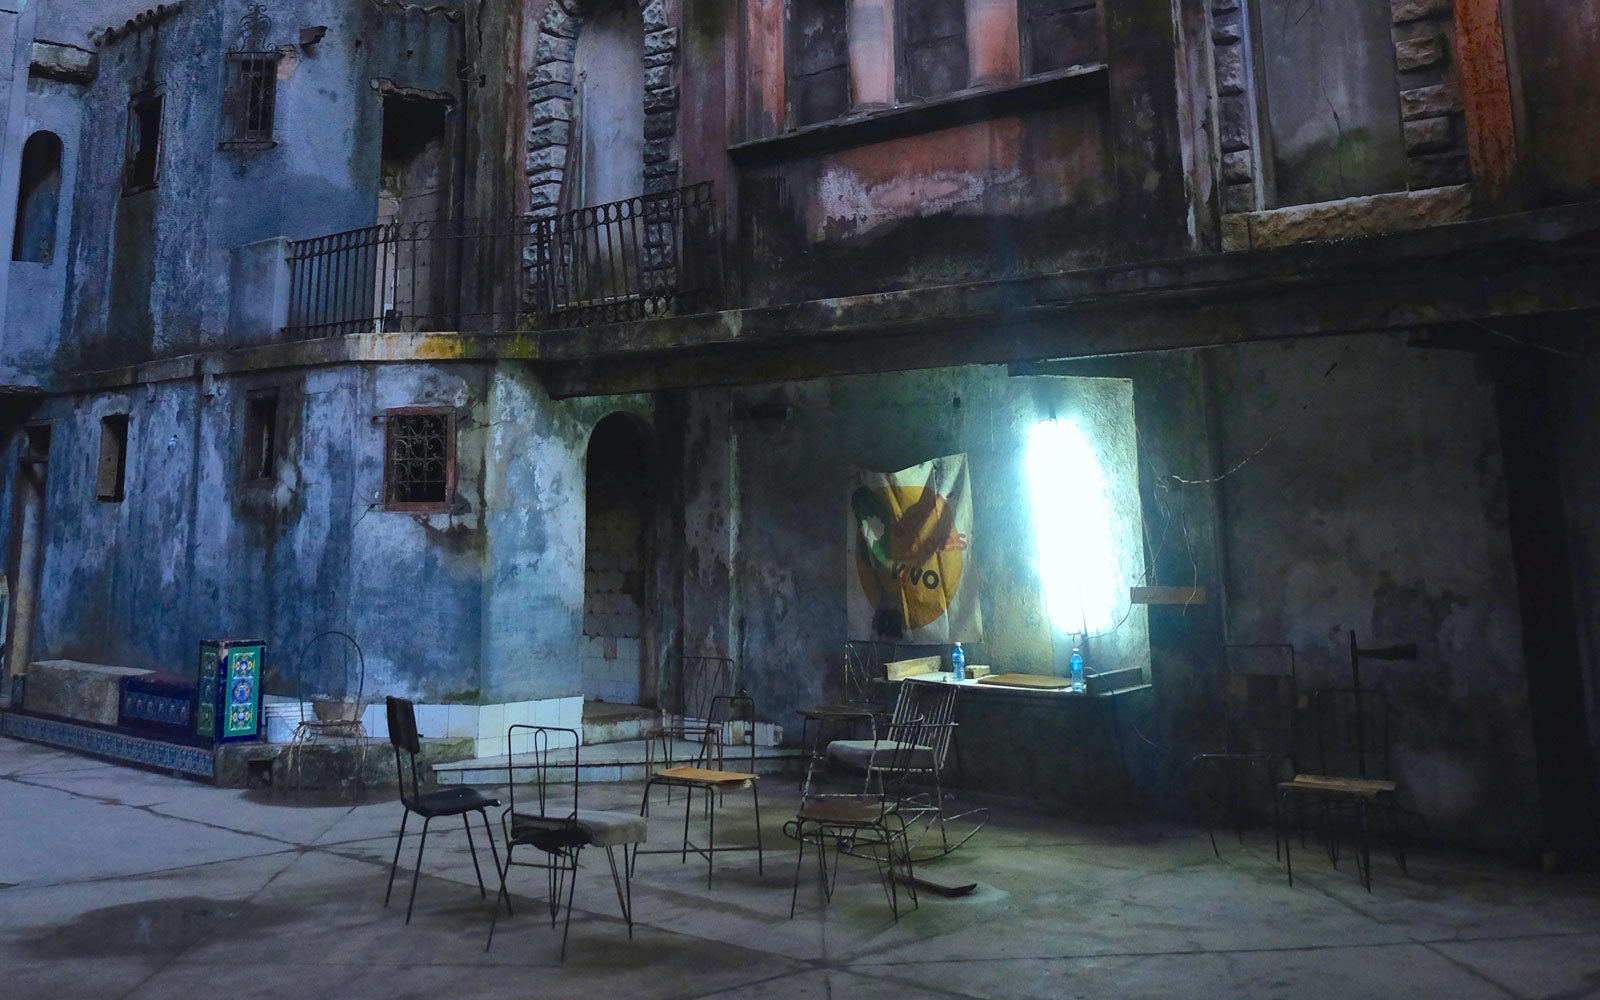 Abandoned buildings in Cuba.